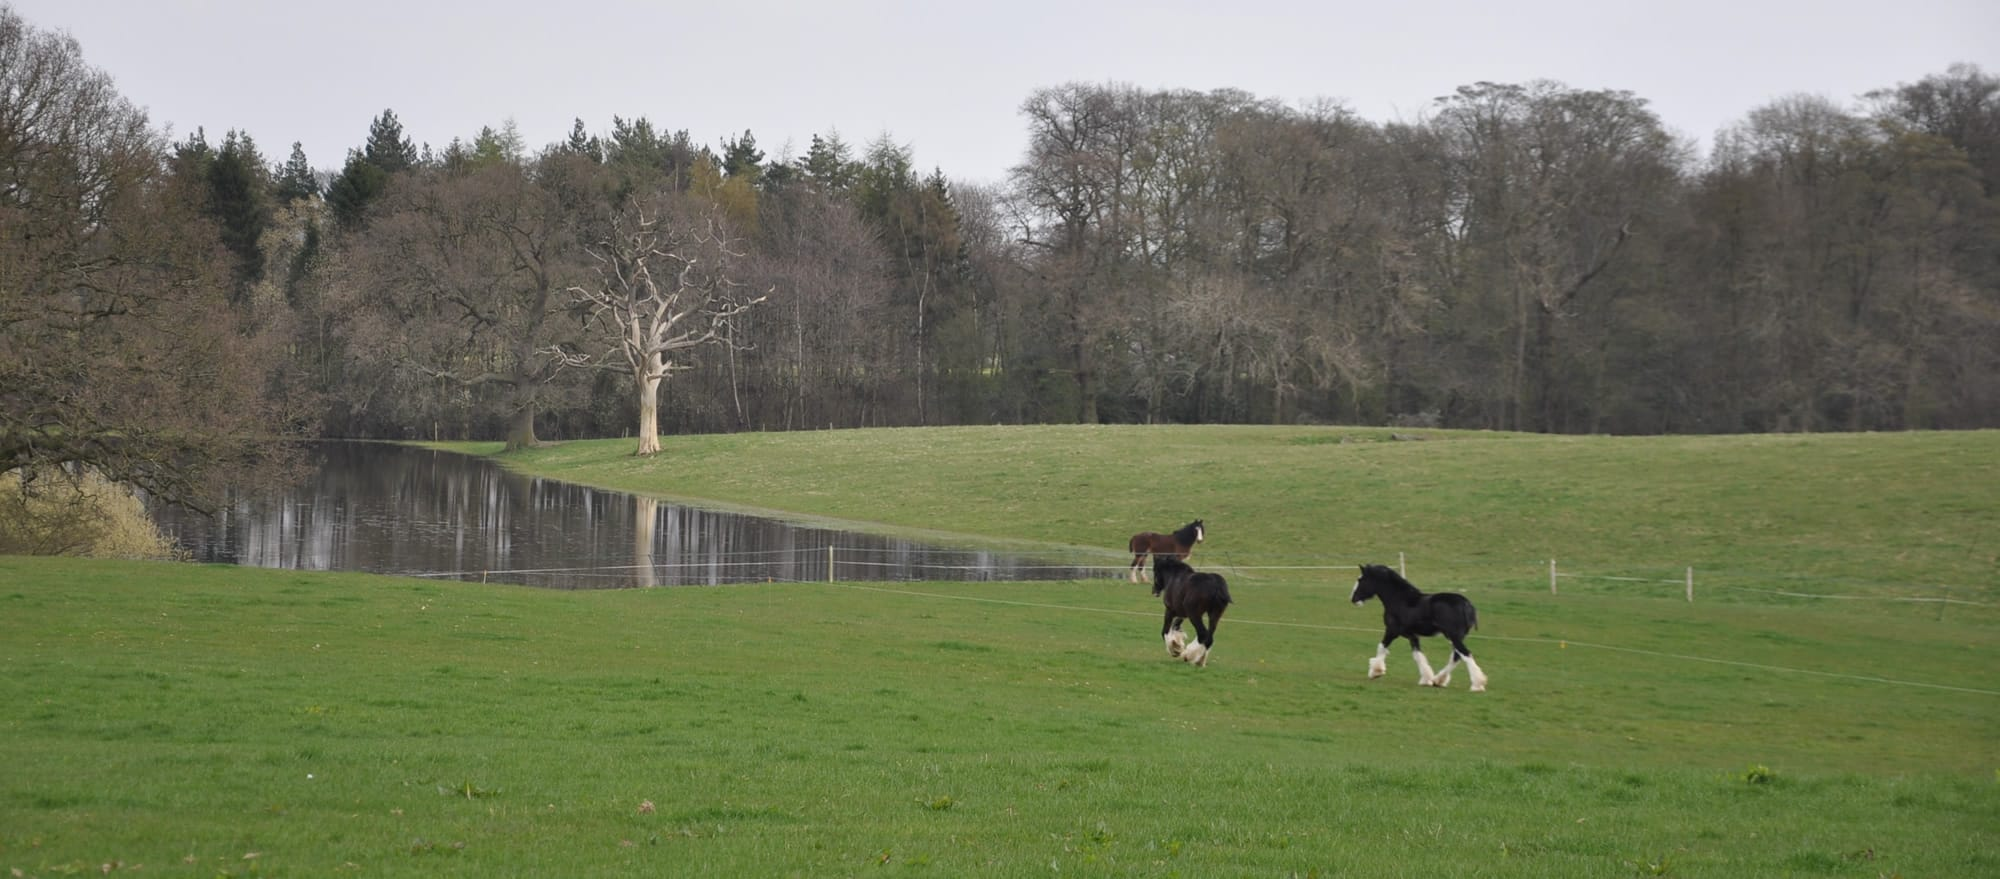 Come and Select Magnificent Horses in Magnificent Countryside